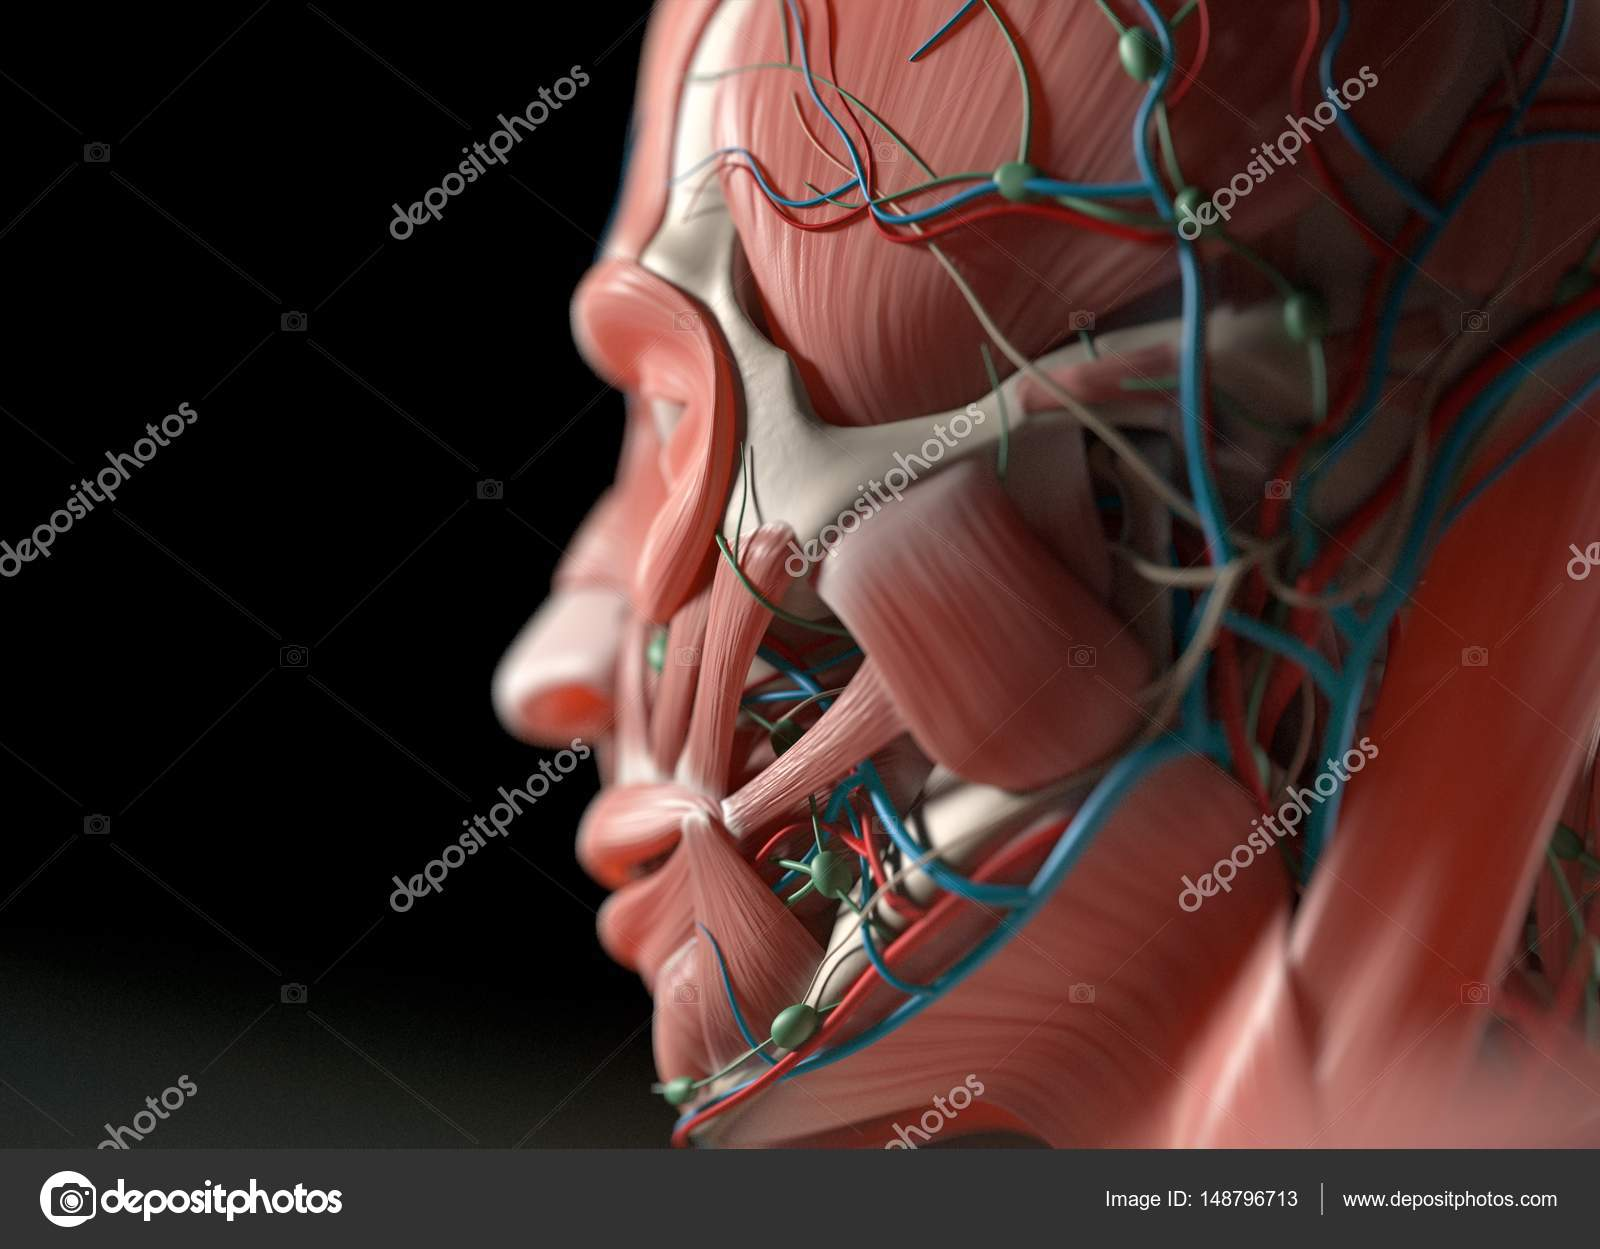 human vascular anatomy diagram wiring for 3 phase motor system model stock photo c anatomyinsider 3d illustration by